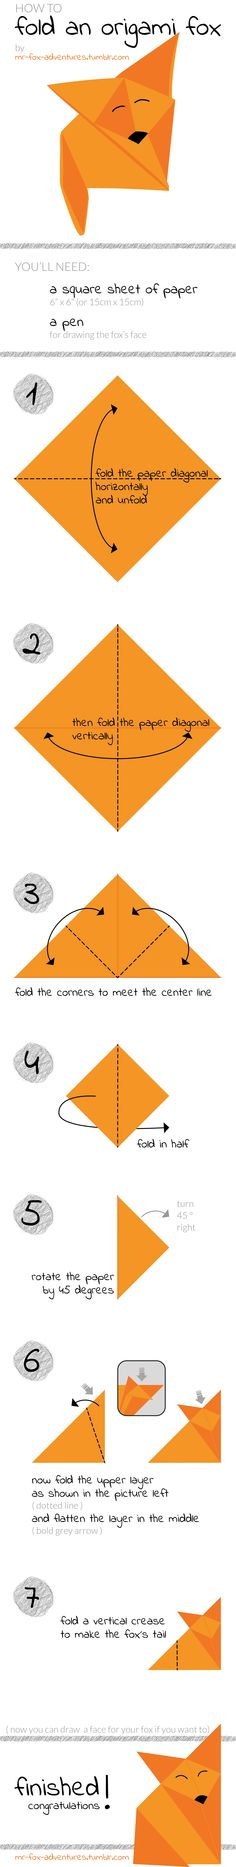 #Origami Fox Tutorial for my blog http://mr-fox-adventures.tumblr.com/